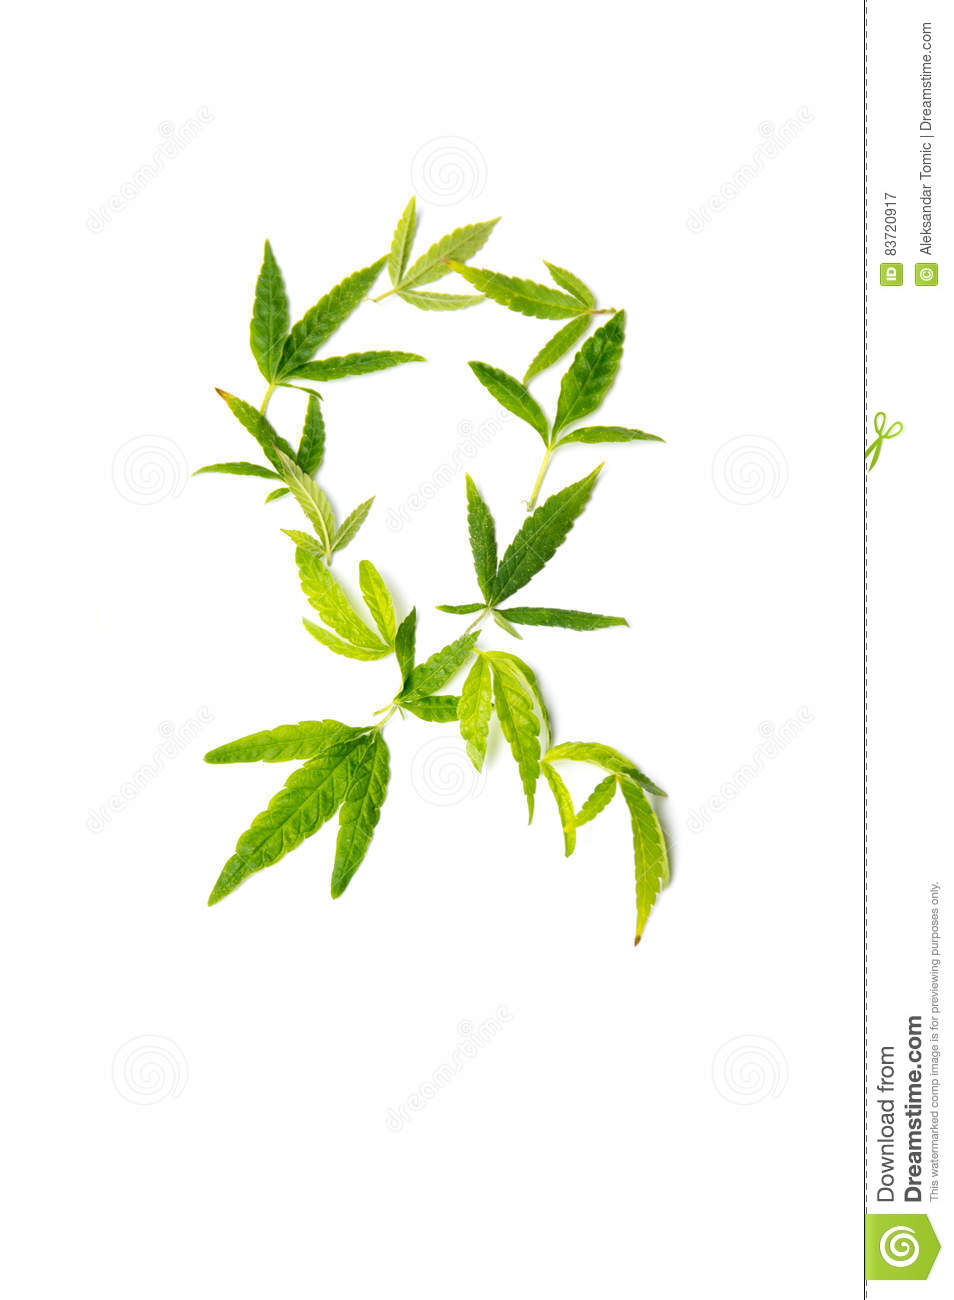 Fight Cancer Sign Made From Marijuana Leaves Stock Photo